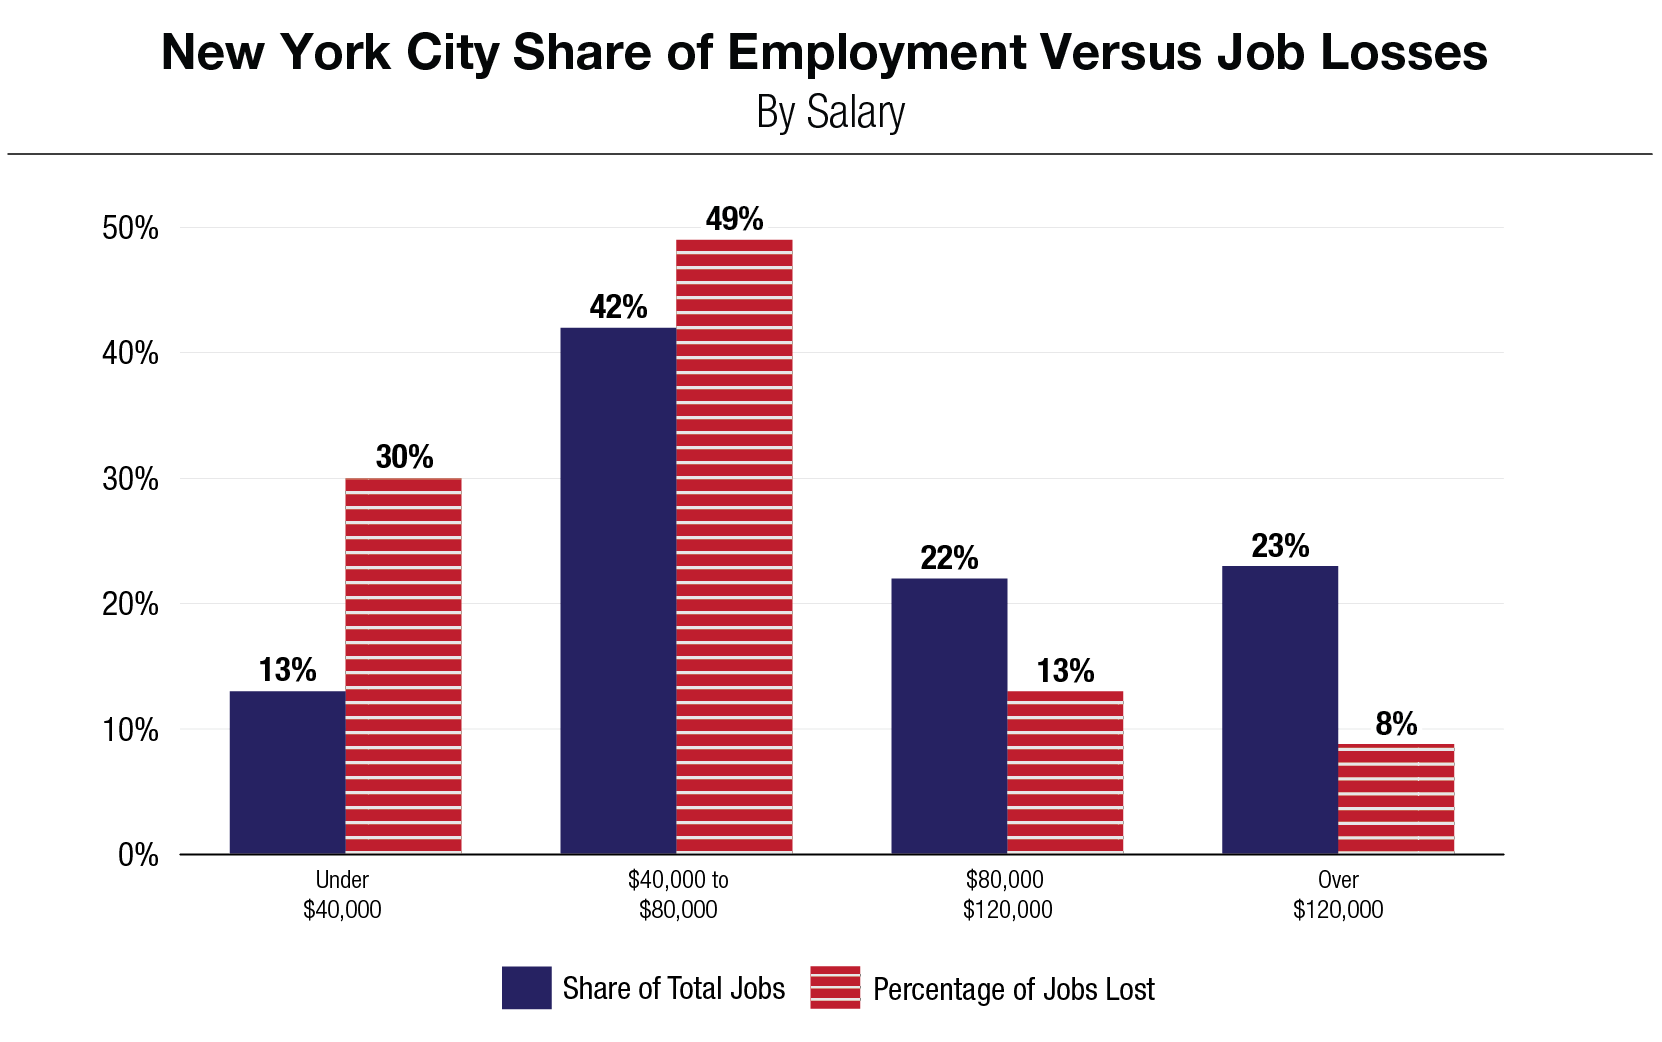 Bar Chart: New York City Share of Employment Versus Job Losses, By Salary